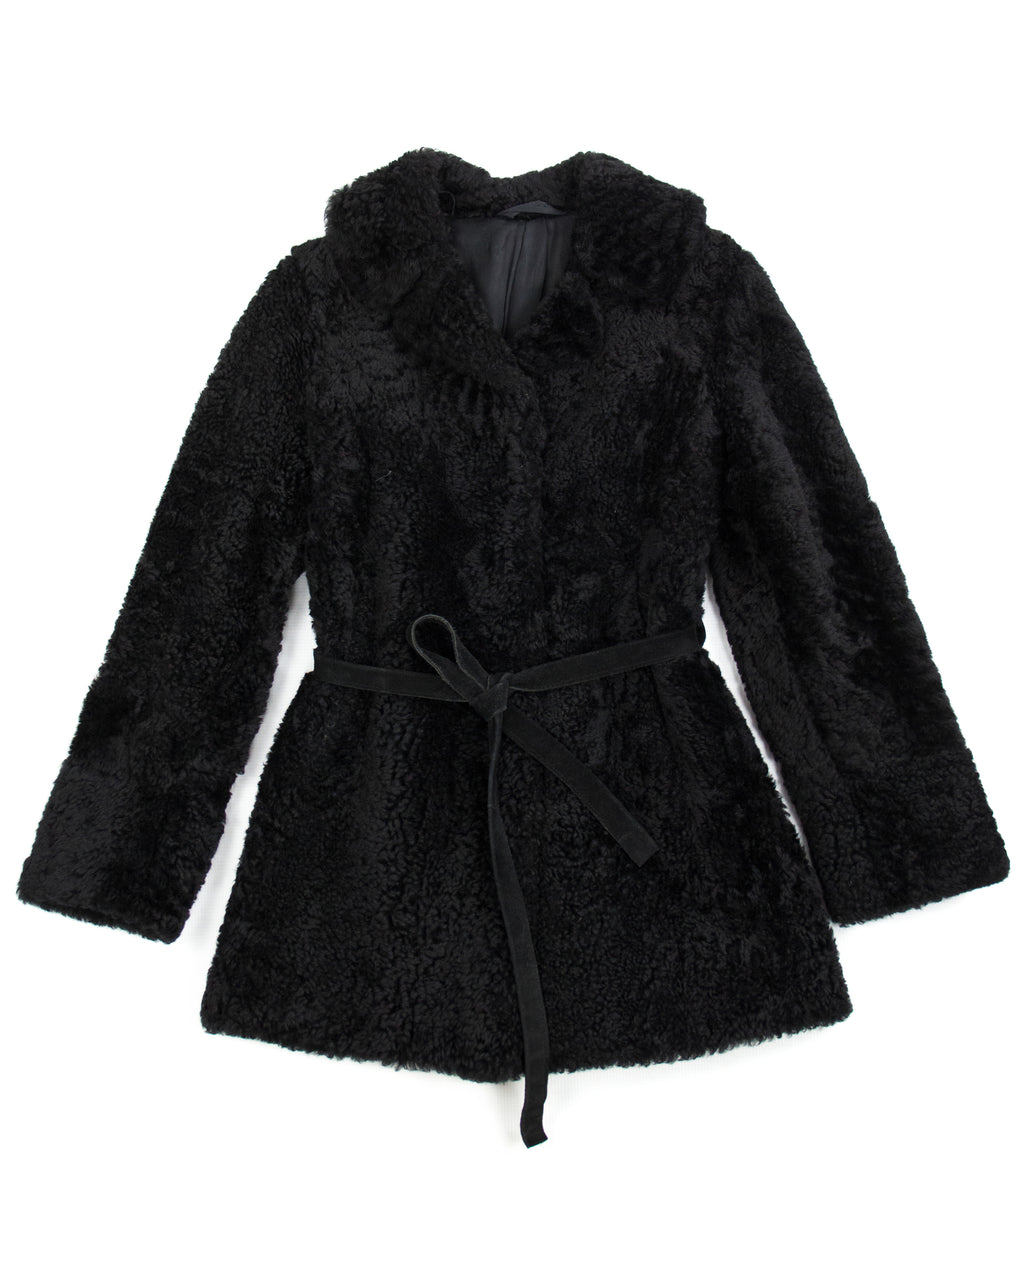 Black Shearling Coat With Tie Waist Belt, SIZE S - second_first